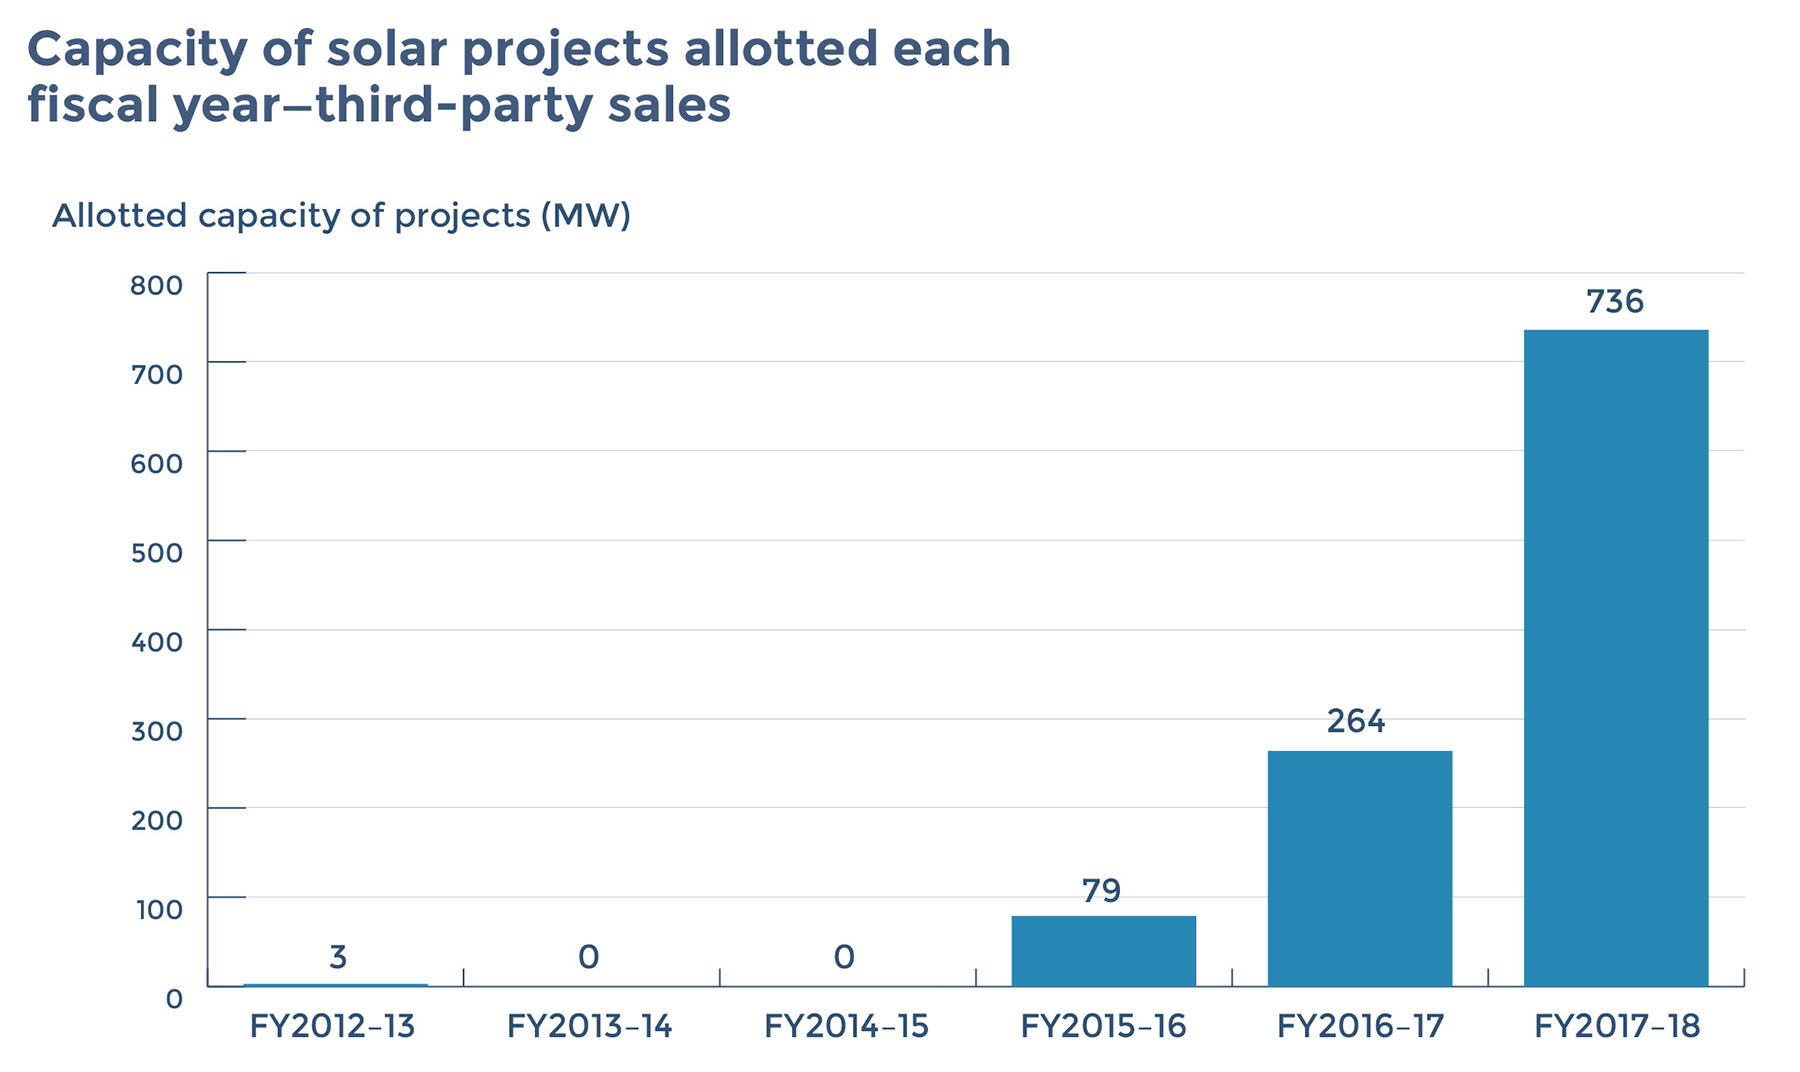 """Source: KREDL (projects marked as commissioned as of July 2018). Karnataka Renewable Energy Development Ltd. (KREDL), """"Solar Abstract List,"""" http://kredlinfo.in/solarlistrpt.aspx, accessed August 16, 2018. Based on discussion with Deepak Sriram Krishnan and Ashok Kumar Thanikonda; it is assumed that open access projects in Karnataka commissioned between 2014 and March 2018 were driven or influenced by the positive economic conditions created by the order."""